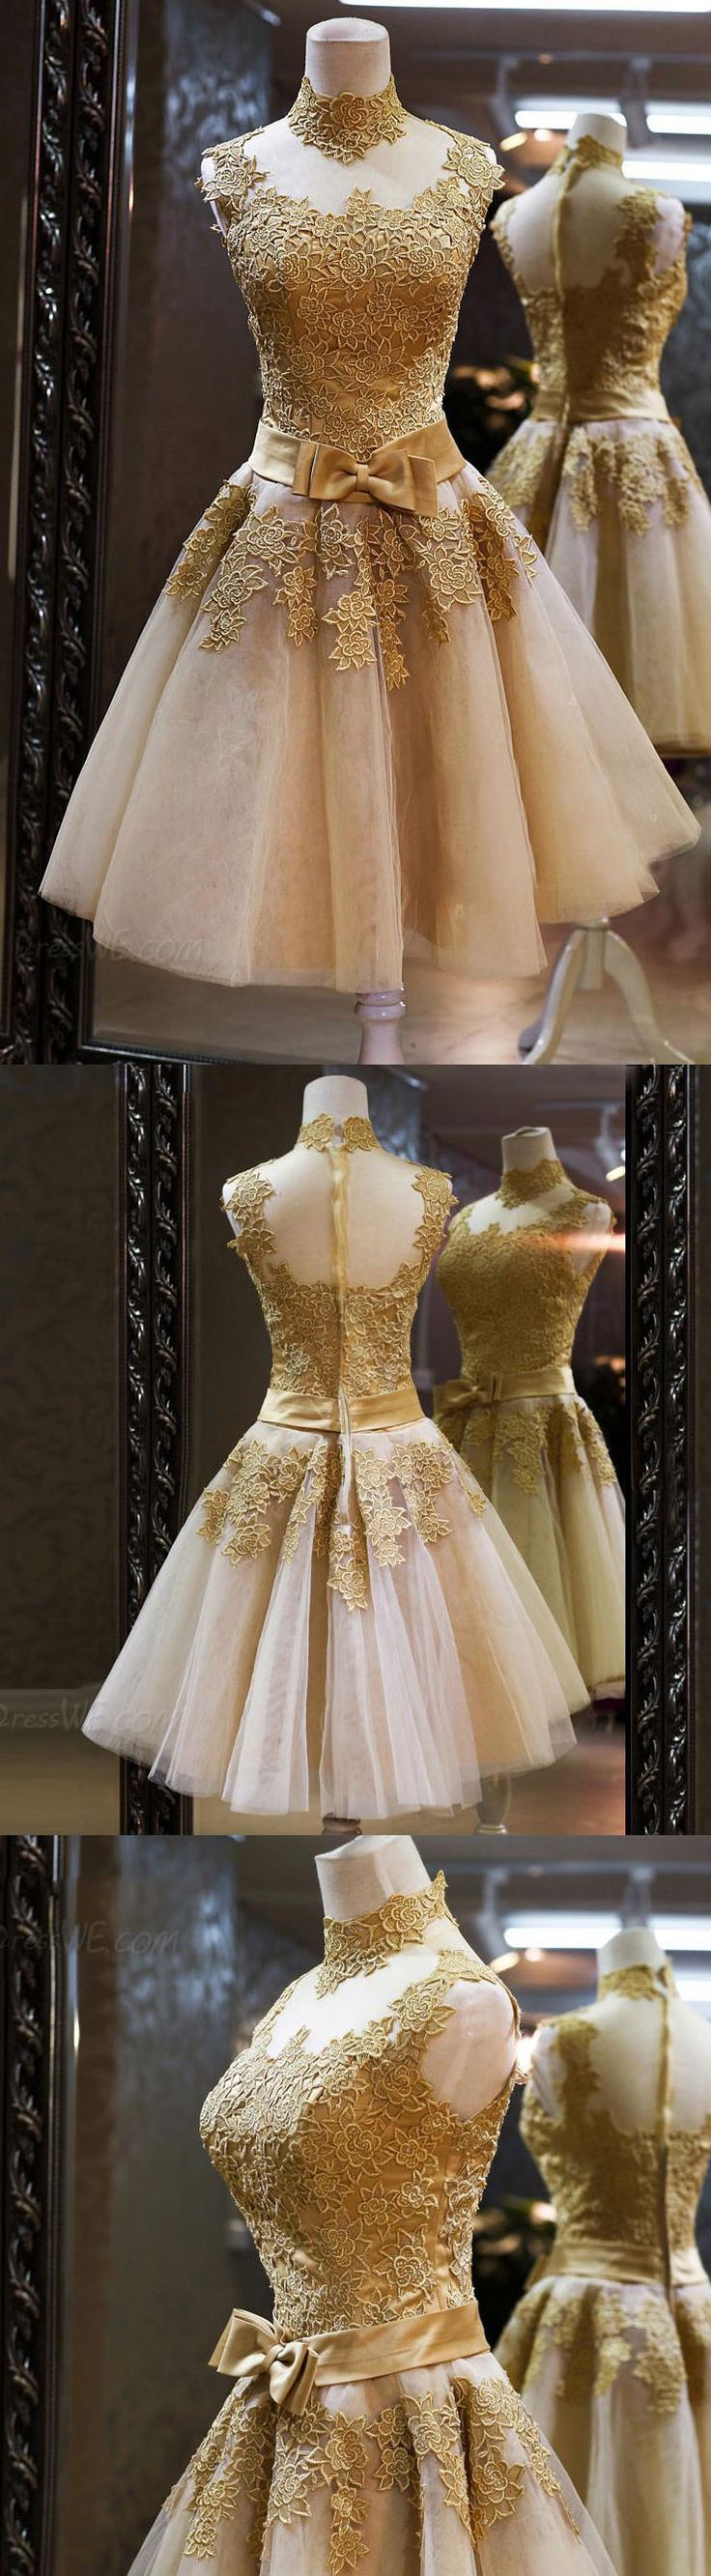 Gold Homecoming Dresses with Lace Applique. We offer homecoming dresses, dresses for teens, freshman homecoming dress, whether you like short or long dresses, whether you prefer vintage or modest, simple or boho, we have all styles! And also we can make the dresses in any color you like: red, black, maroon, purple, blue, green, burgundy, navy, white…Shop your homecoming dress at #junebridals.com now and save up to 70%!